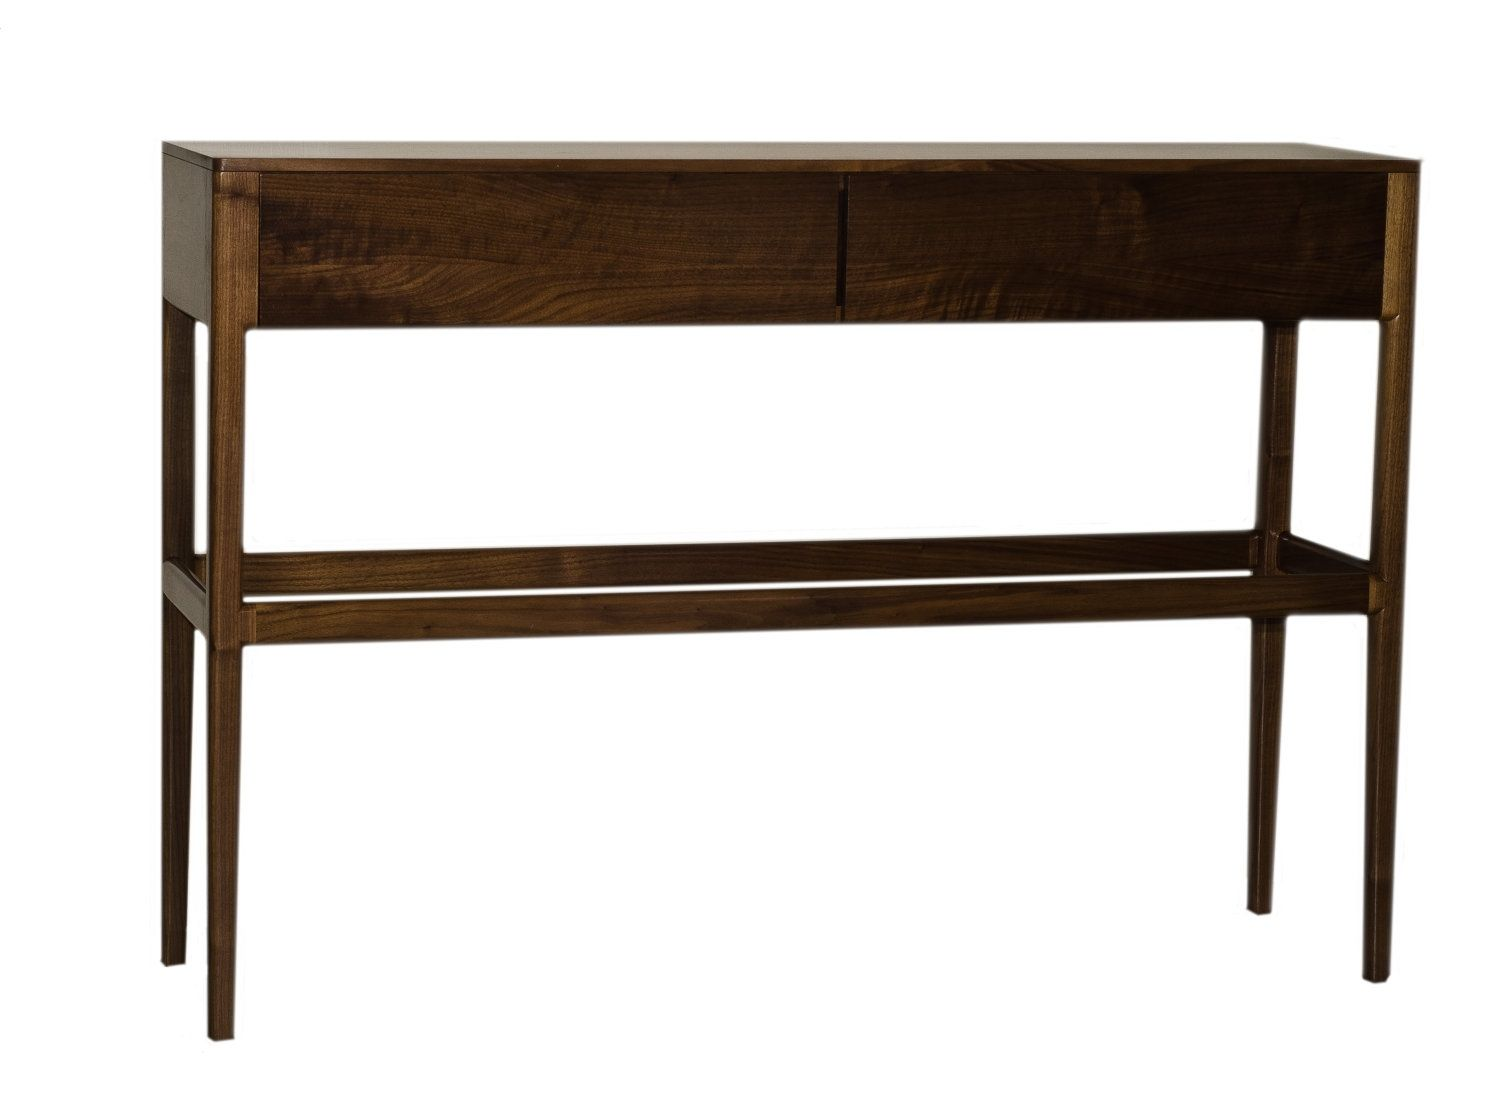 Custom Danish Mid Century Modern Style Console Table With Drawers  Solid  Wood Walnut by Black Elm Woodworking   CustomMade comCustom Danish Mid Century Modern Style Console Table With Drawers  . Mid Century Sofa Buy Uk. Home Design Ideas